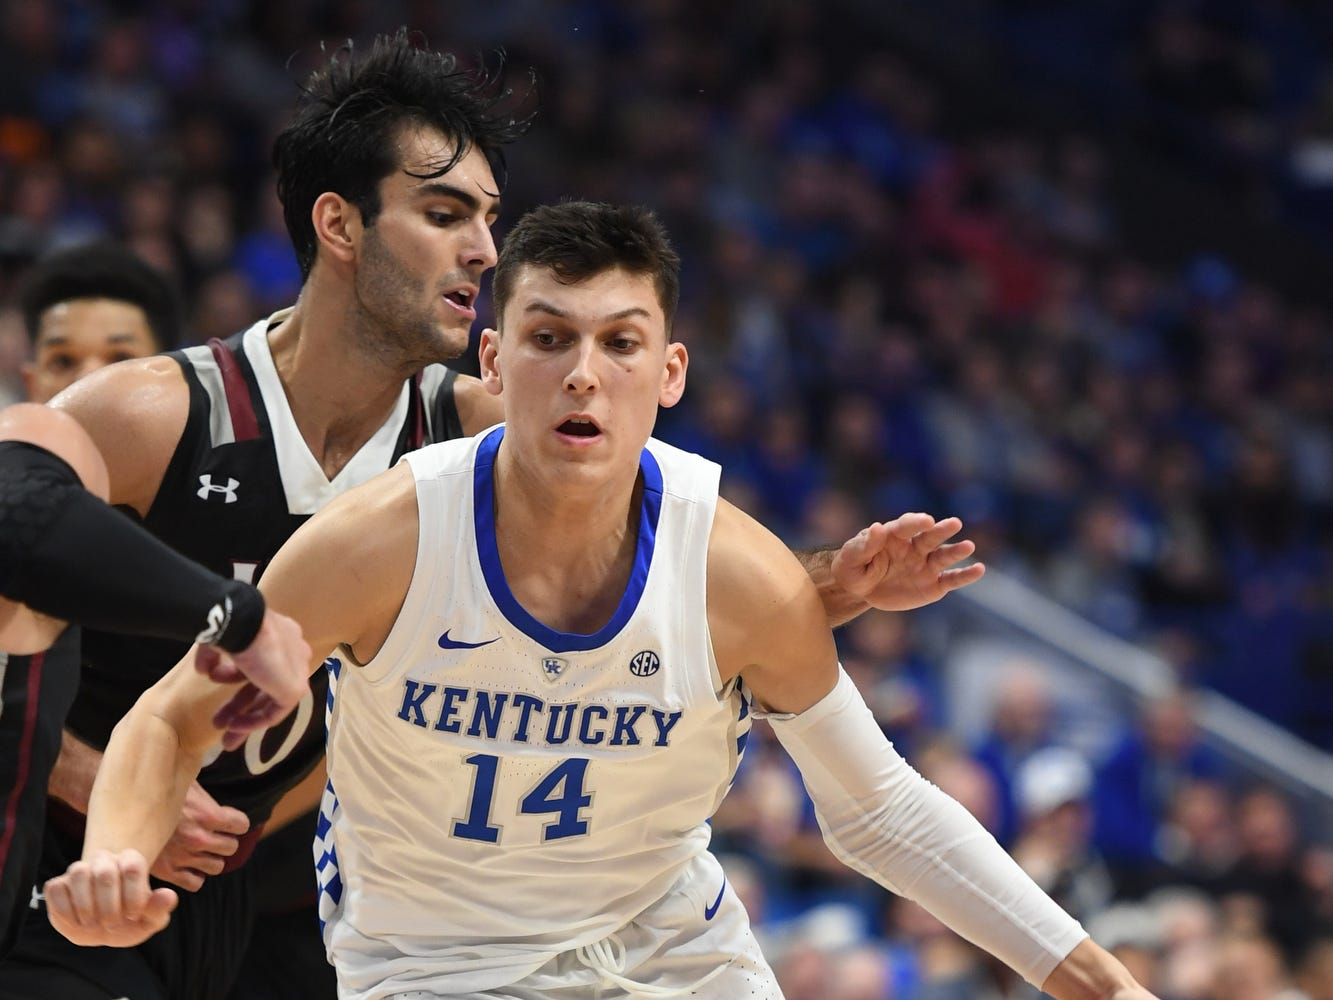 Tyler Herro drives with the ball during the University of Kentucky  basketball game against Indiana University of Pennsylvania at Rupp Arena on Friday, Nov. 2, 2018.